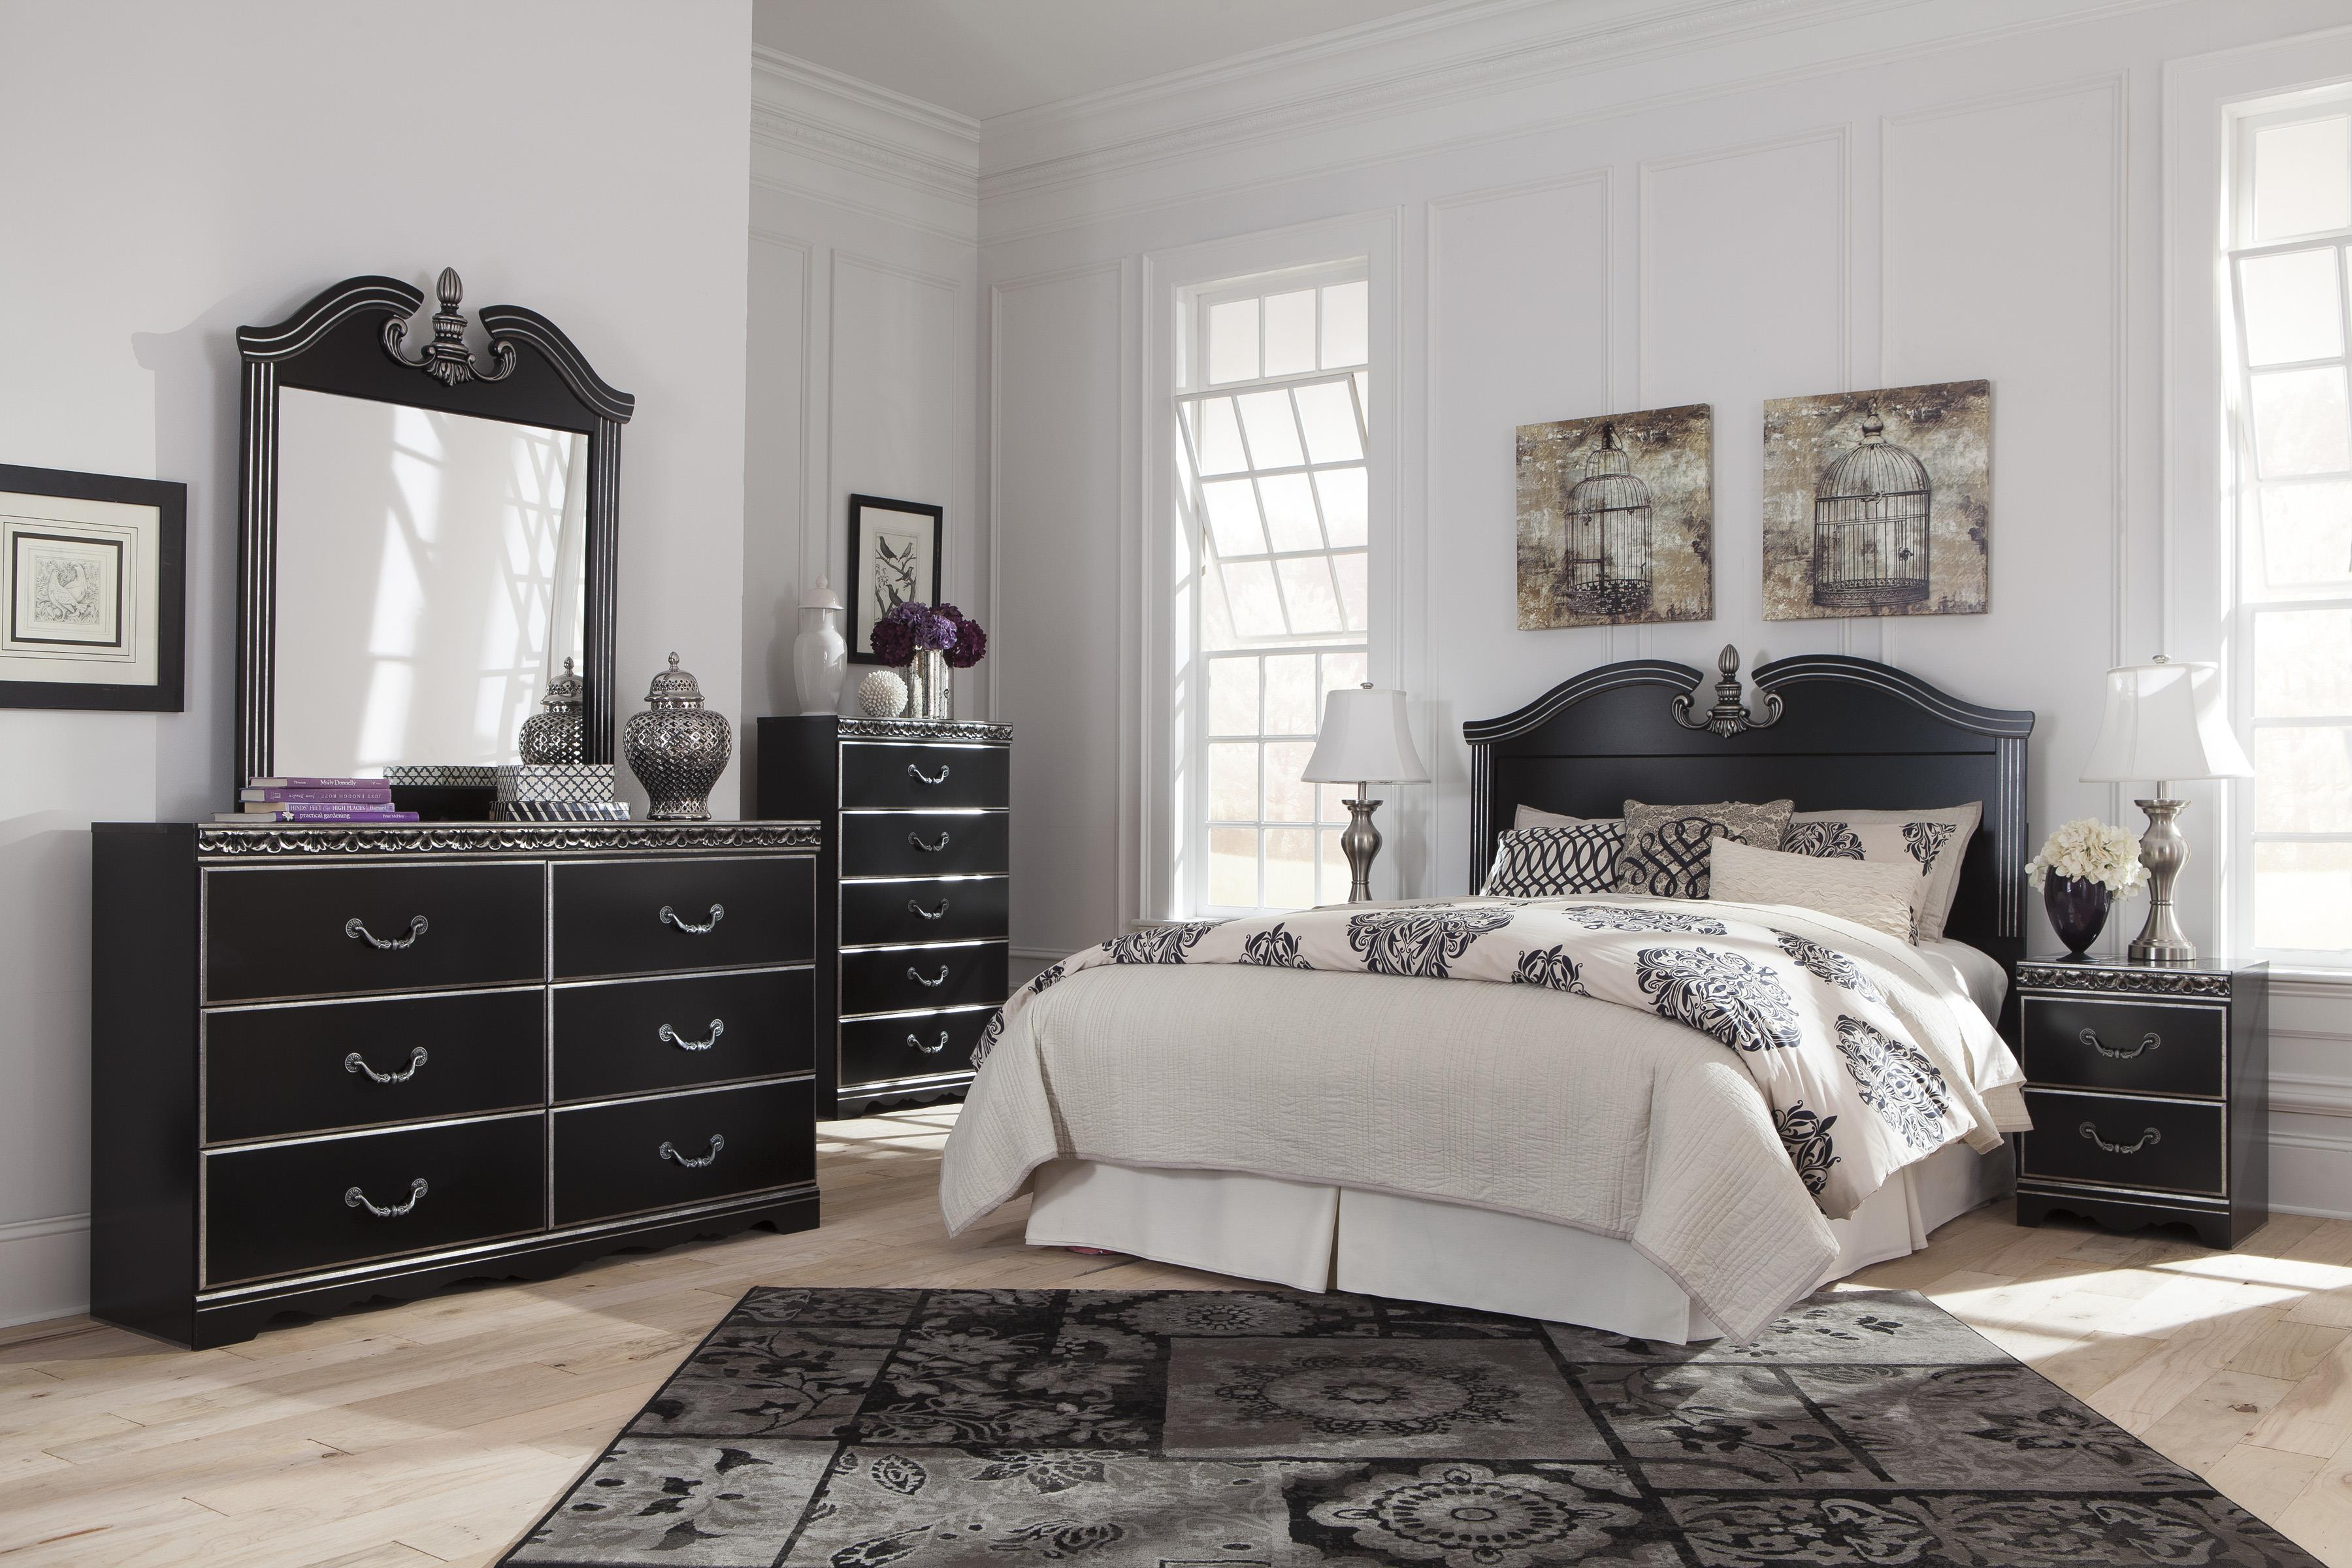 Signature Design by Ashley Navoni Queen/Full Bedroom Group - Item Number: B301 Q Bedroom Group 2